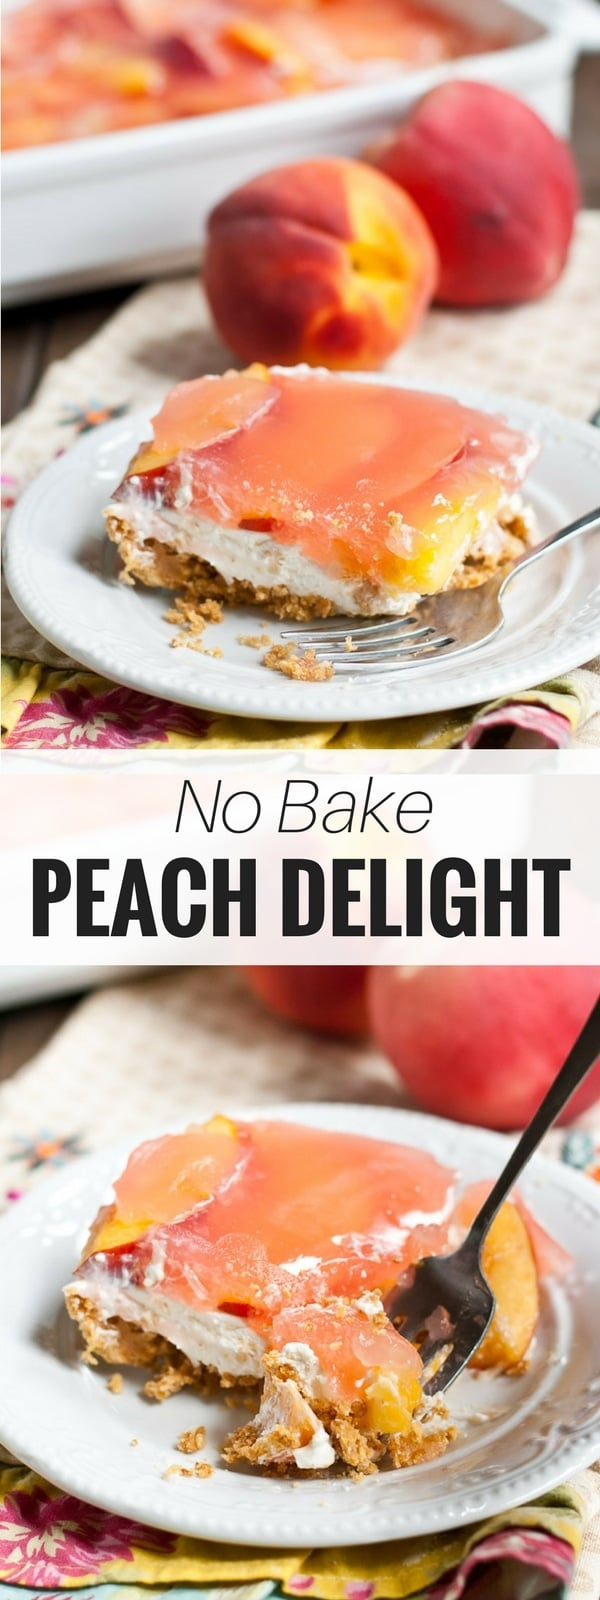 This No Bake Peach Delight comprised of a graham cracker crust, creamy cheesecake mousse, and peach jello is the perfect summer dessert!